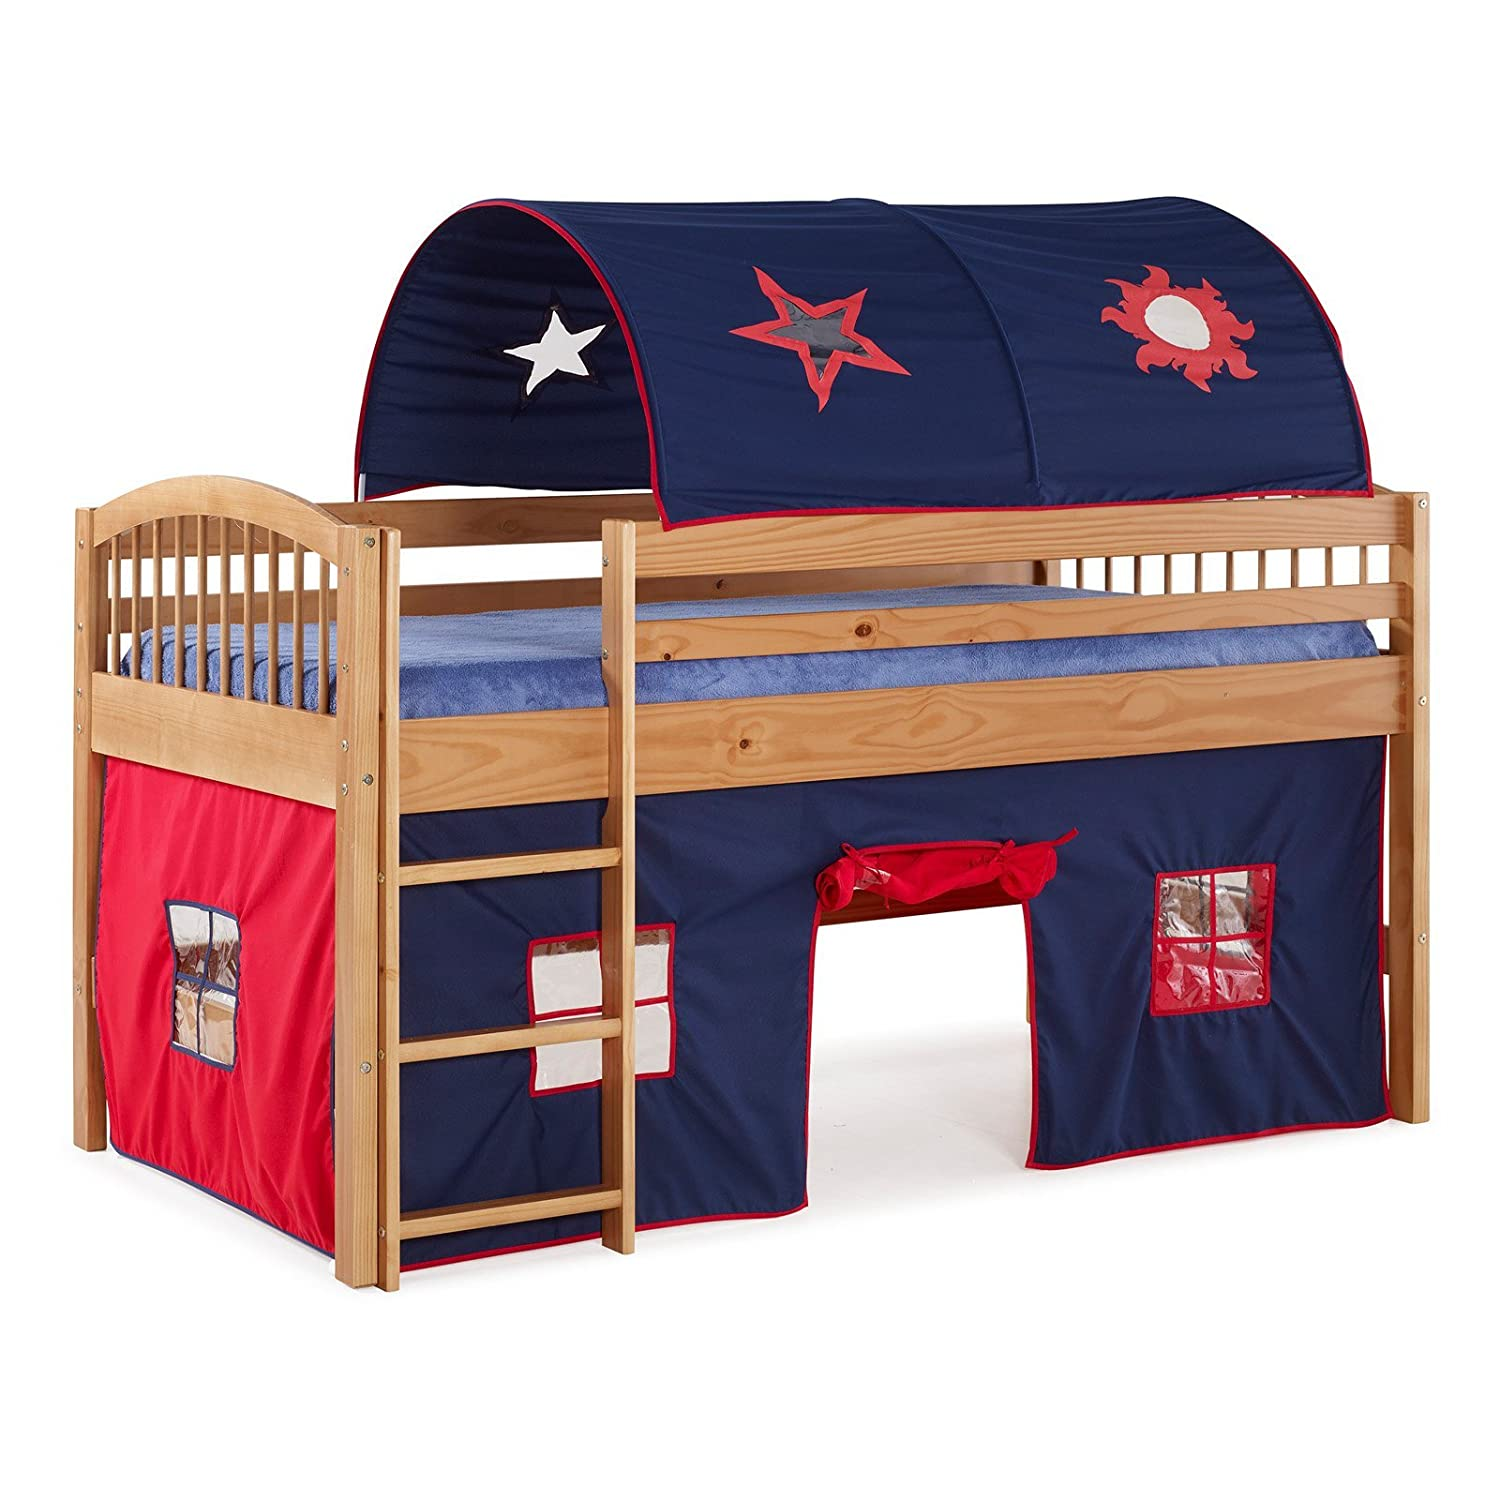 Amazon Alaterre Addison Junior Loft Bed with Tent and